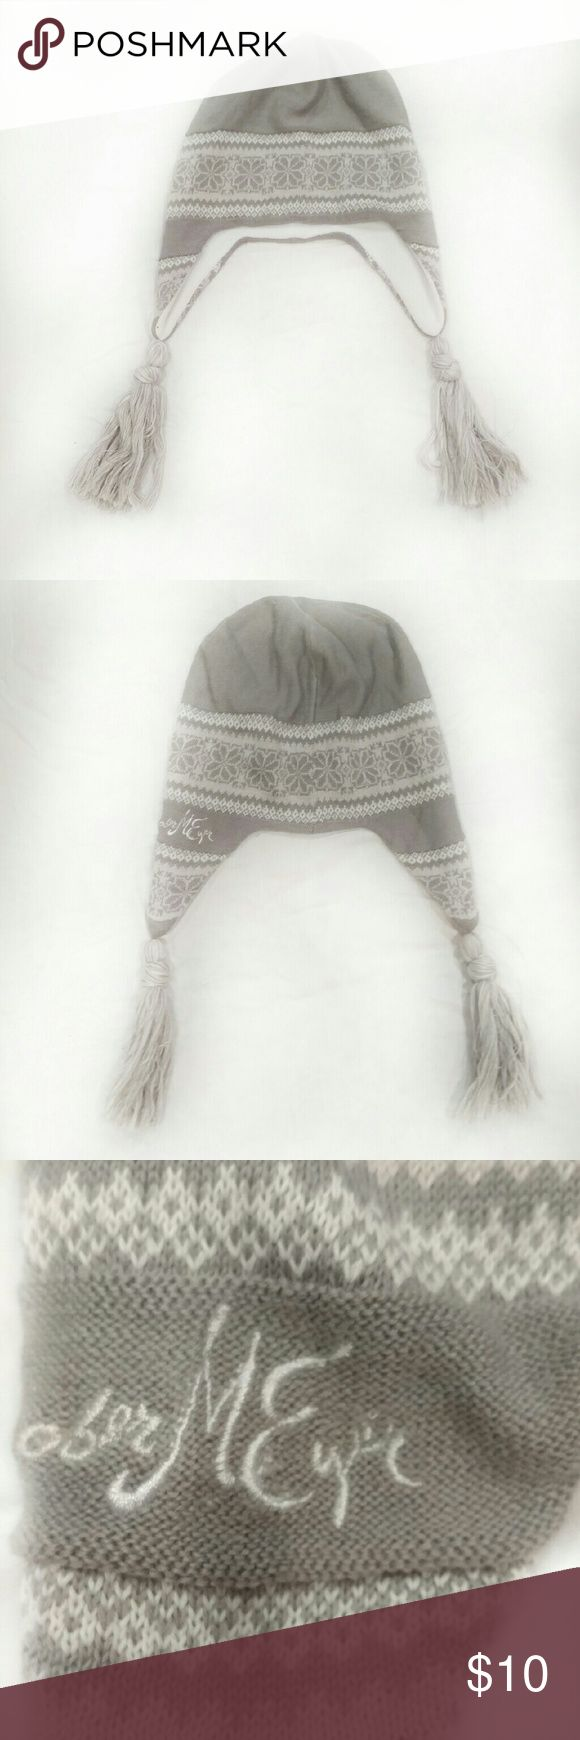 🎉HP🎉Obermeyer Boho Snowboarding Hat - one size - warm ear flaps, especially under helmets! - no top tassel or pom so your helmet fits over it -Grey and White - lined so i it doesn't  itch - cool tassels on end of ear flaps - they also help to pull ear flaps down if your hat rides up?? Obermeyer Accessories Hats